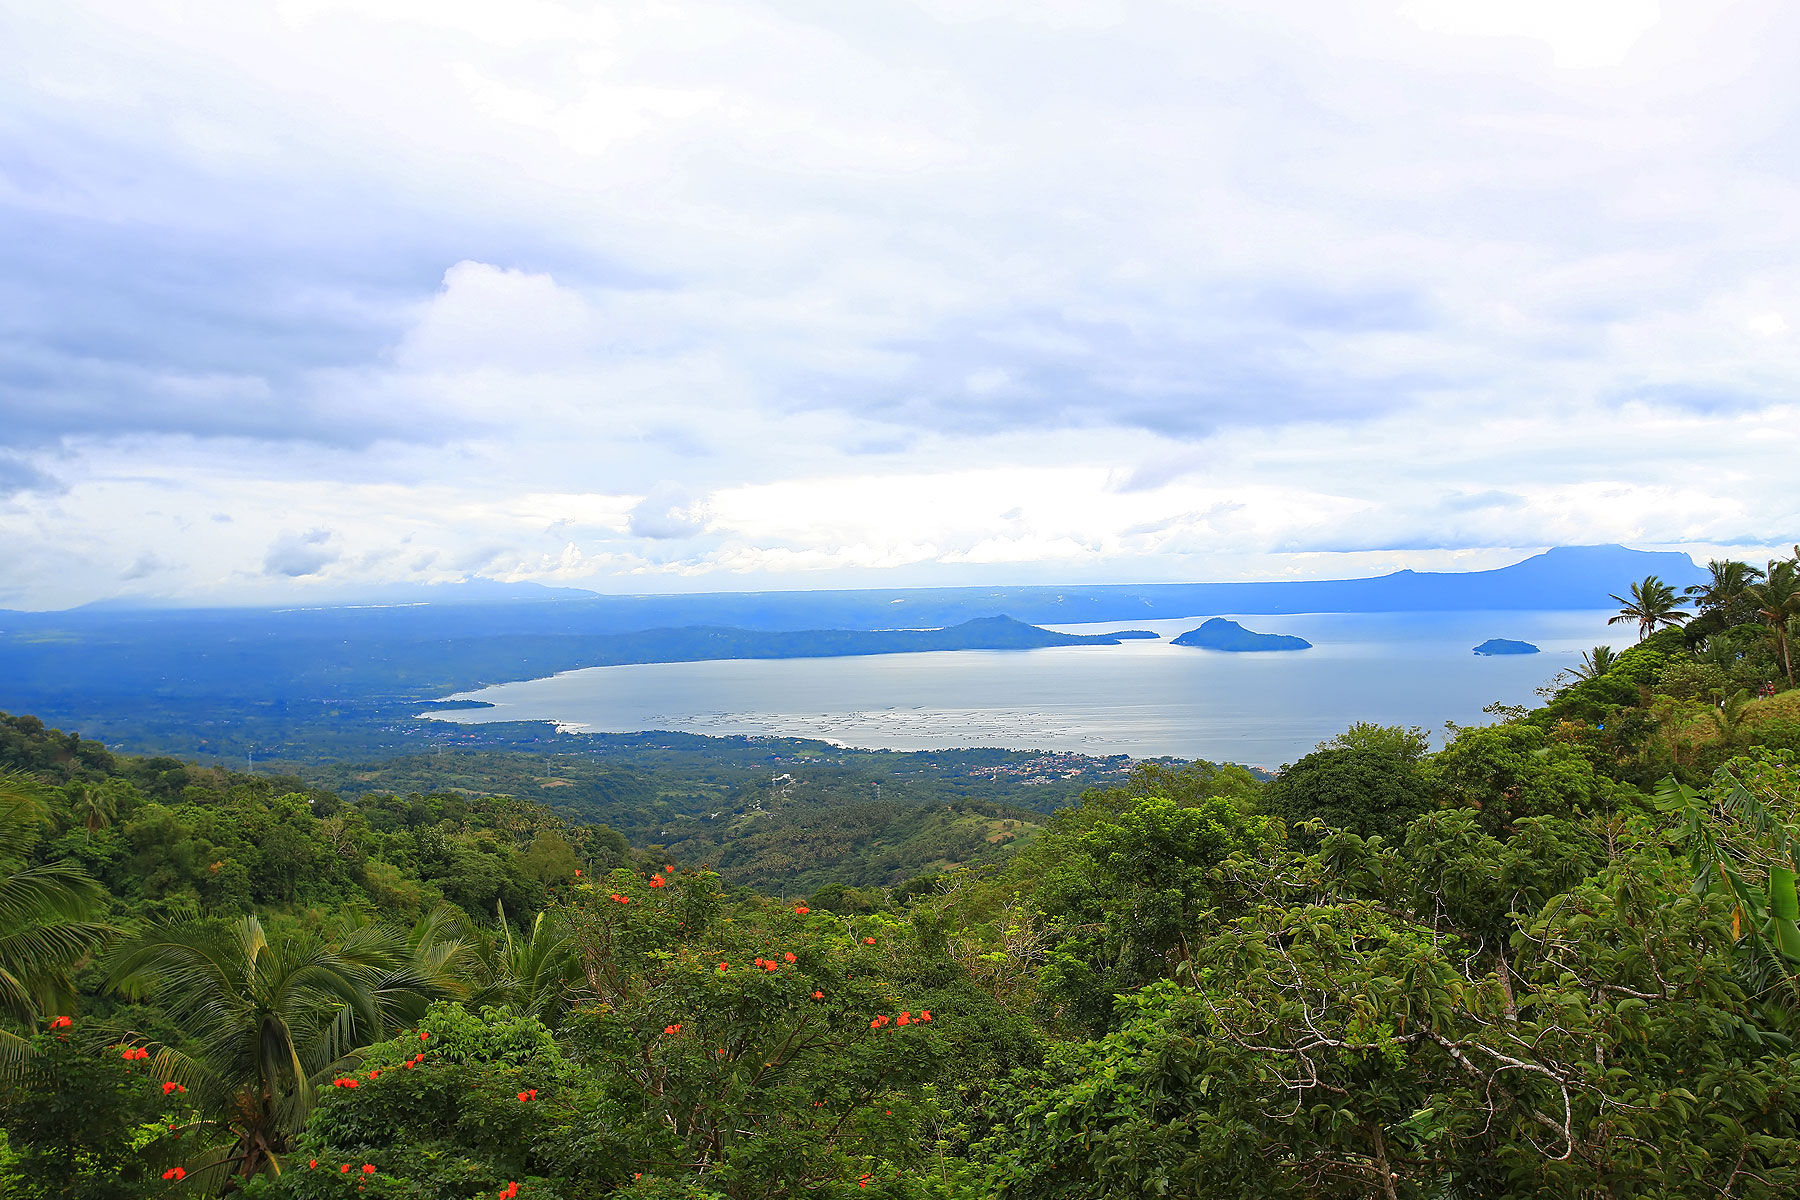 Terreno per Vendita alle ore 6 Hectare Lot Overlooking the Serene Lake Taal Tagaytay-Calamba Road Tagaytay City, Luzon, 4120 Filippine